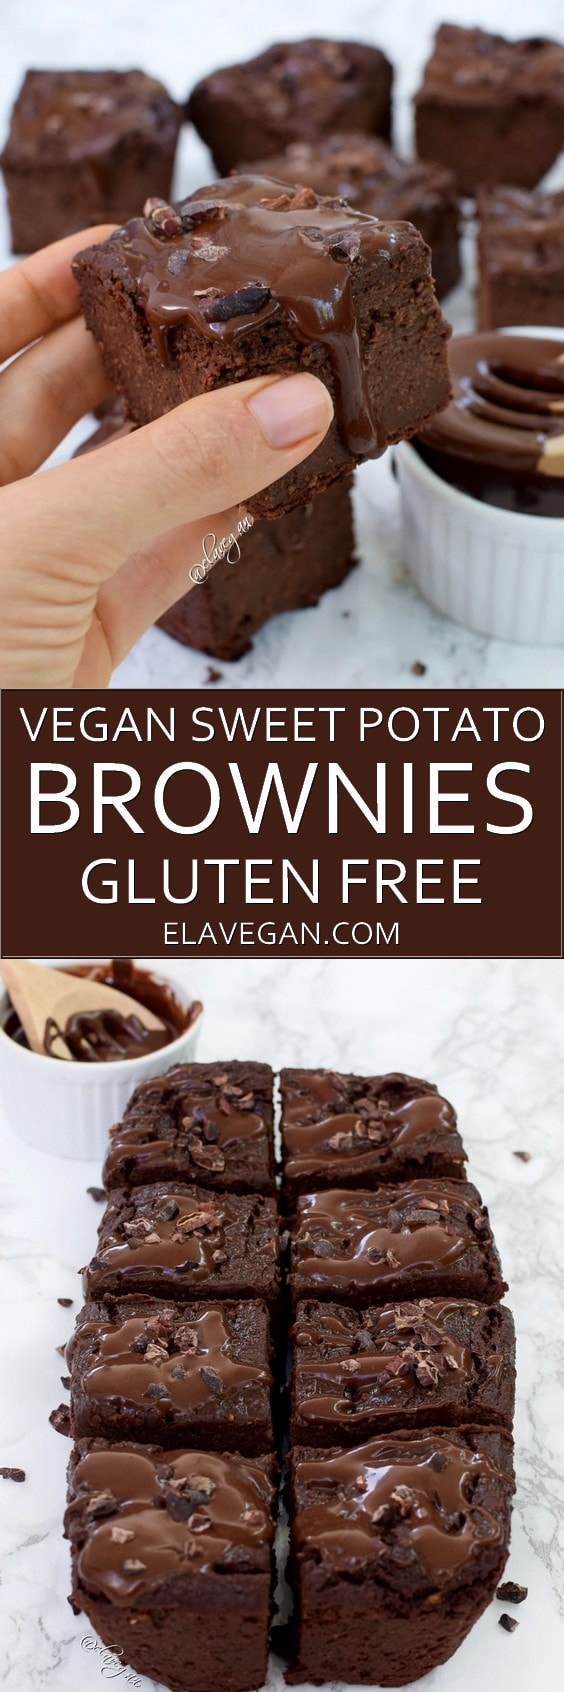 Vegan sweet potato brownies with a chocolate glaze. This is a healthy gluten-free, low-calorie, and low-fat, dairy-free recipe. These vegan brownies are fudgy, chocolatey and rich